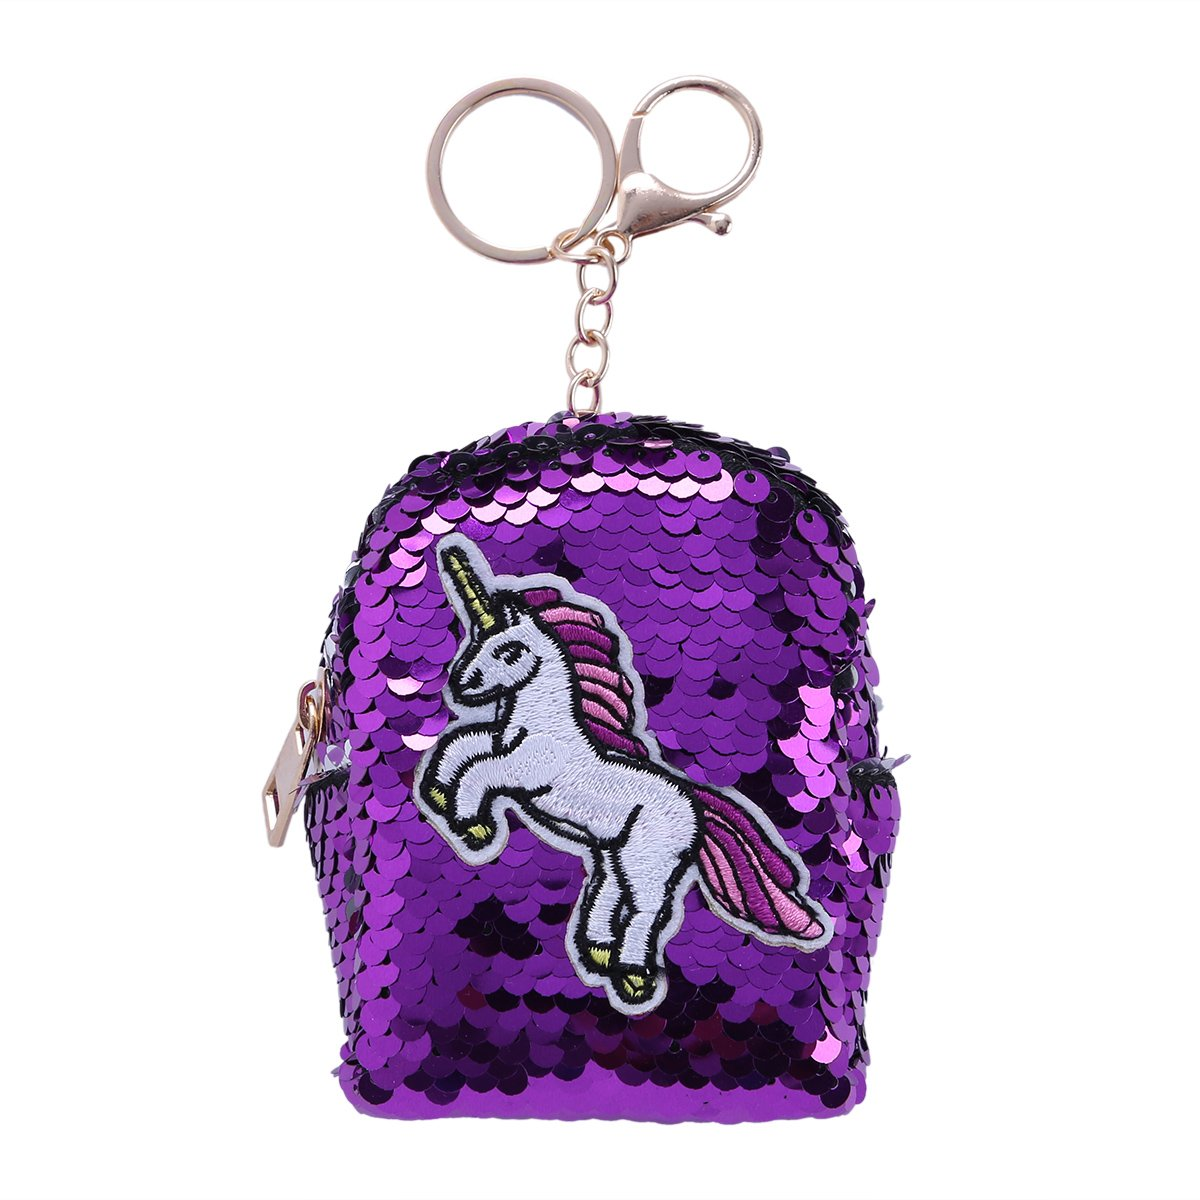 YiZYiF Mini Coin Purse DIY Reversible Sequin Wallet Pouch Glitter Embroidery Key Chain Purple One Size